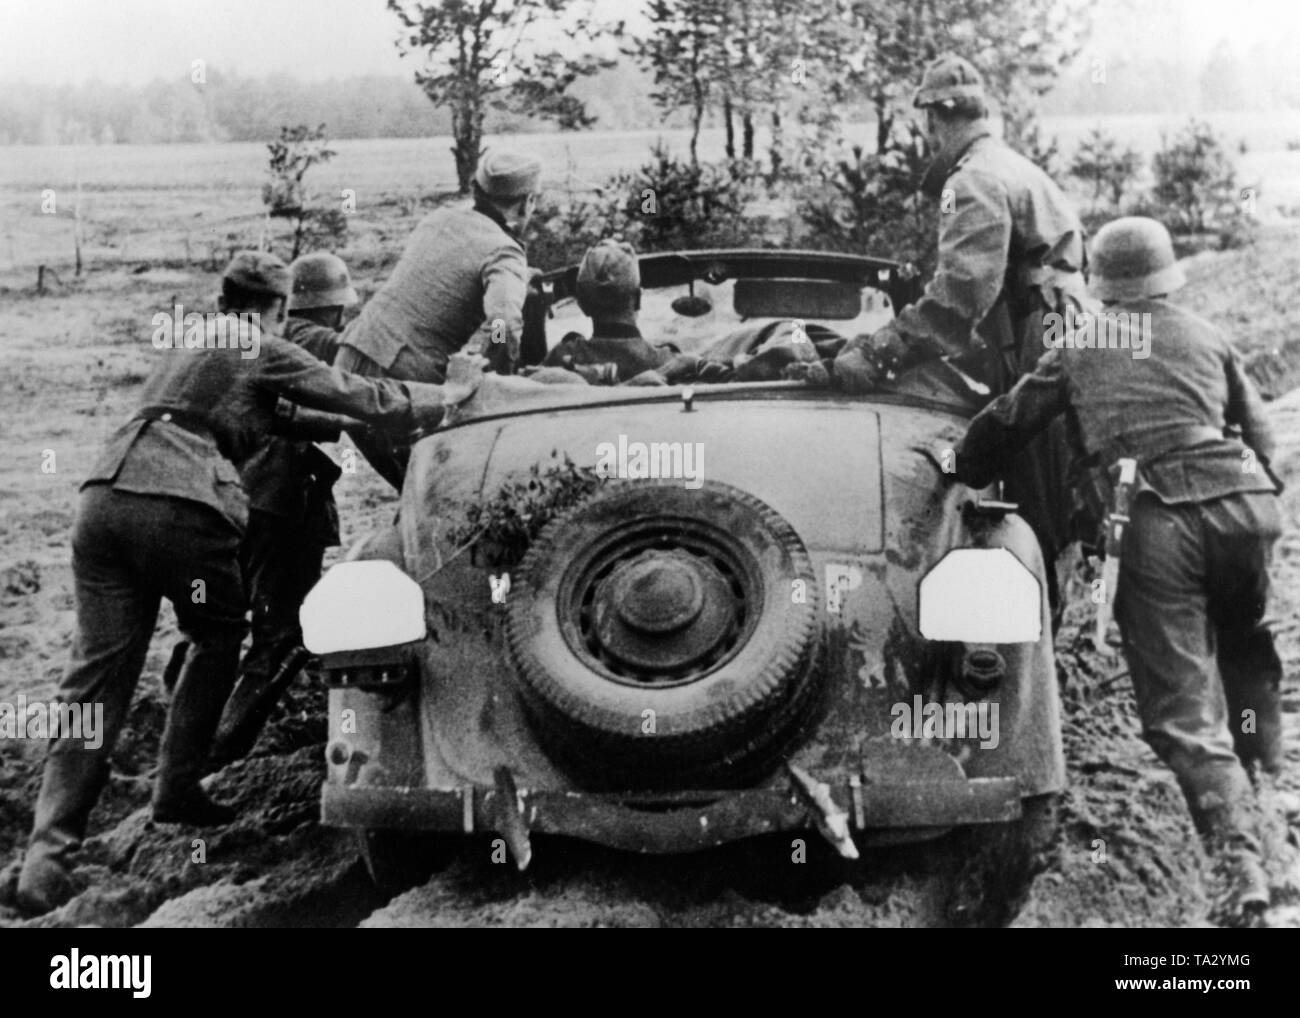 German troops are trying push out a car stuck in a sand pit. Stock Photo